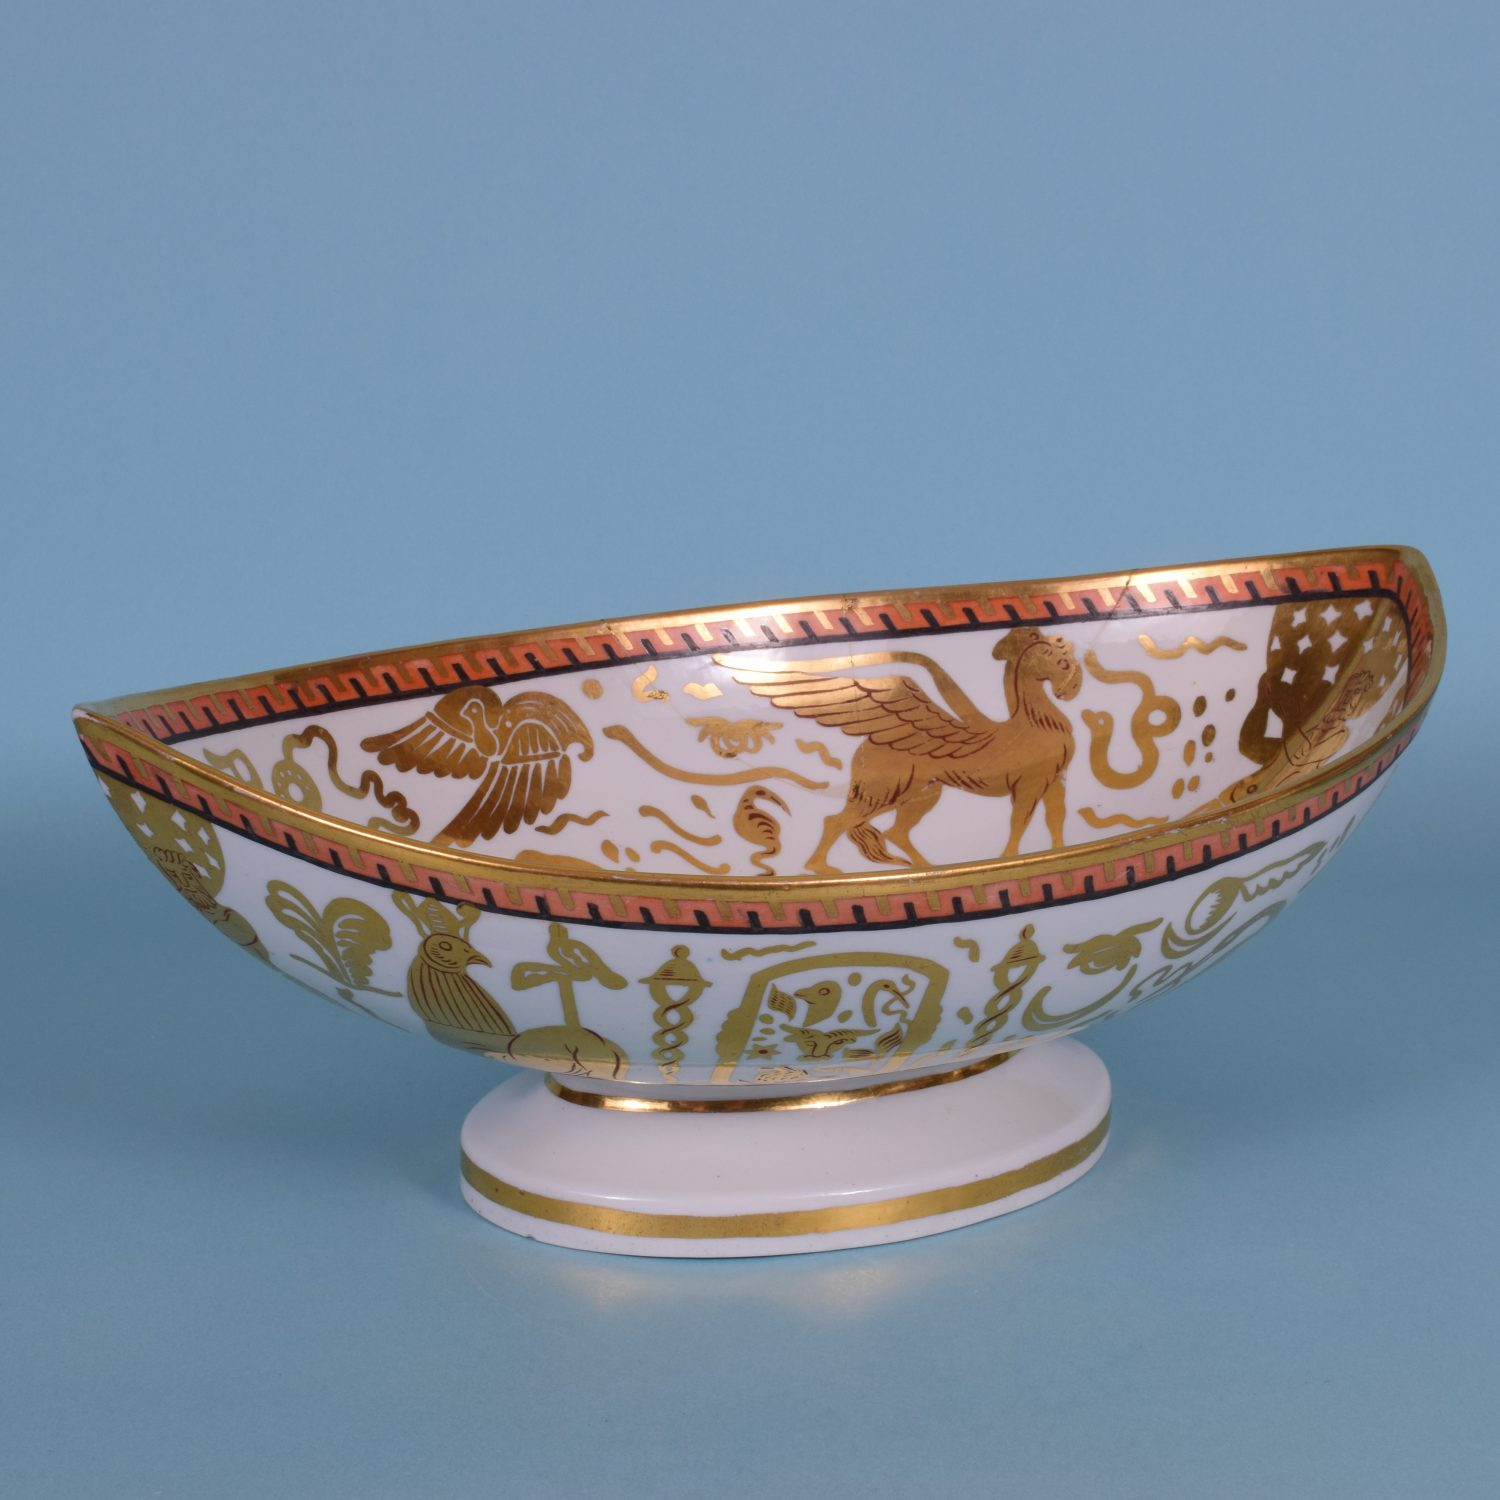 Egyptian Revival Table Centrepiece, c1810